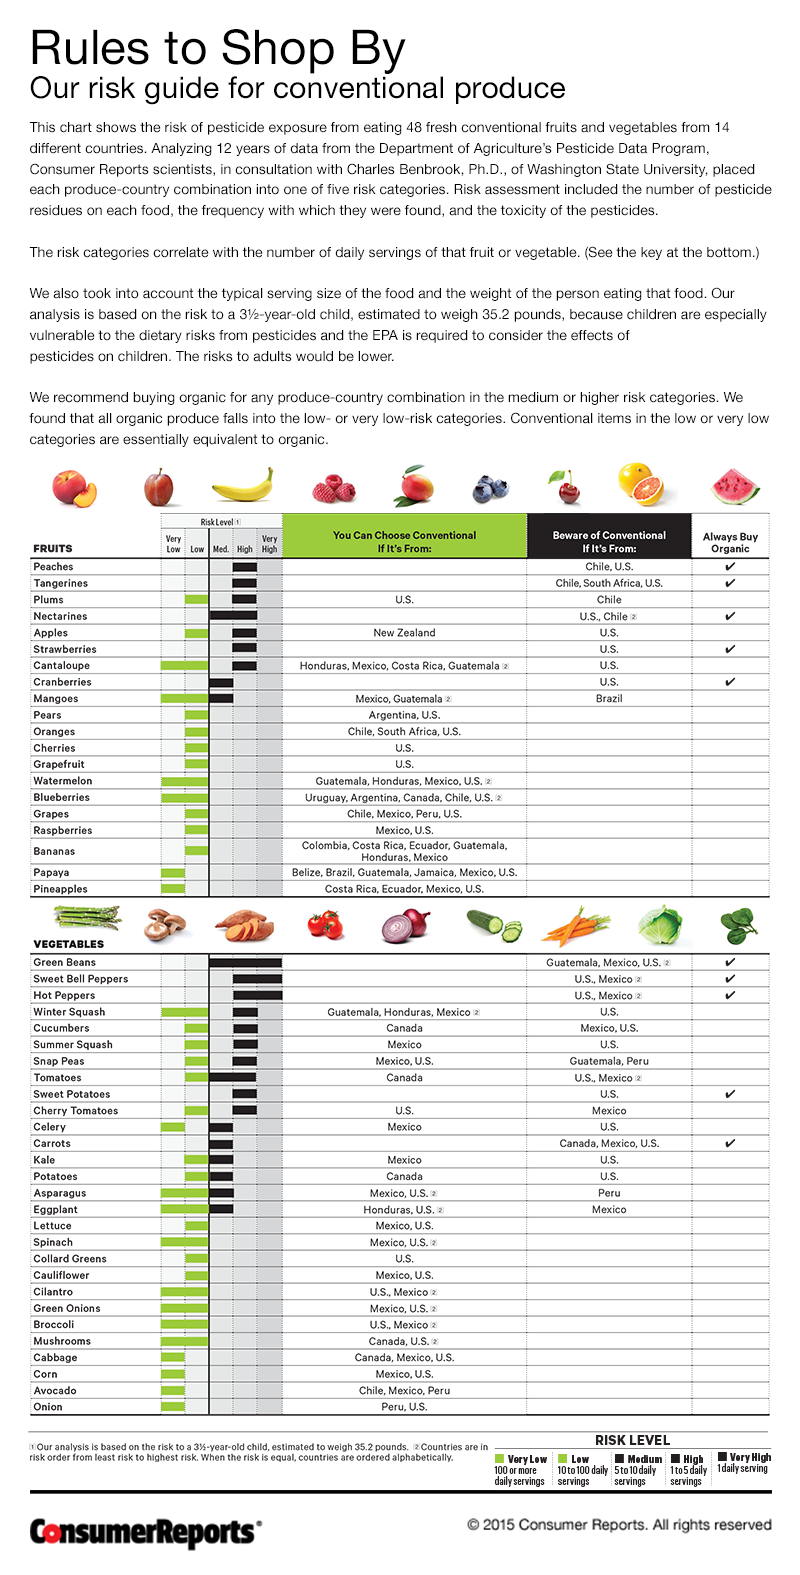 Pesticides in Produce Consumer Reports